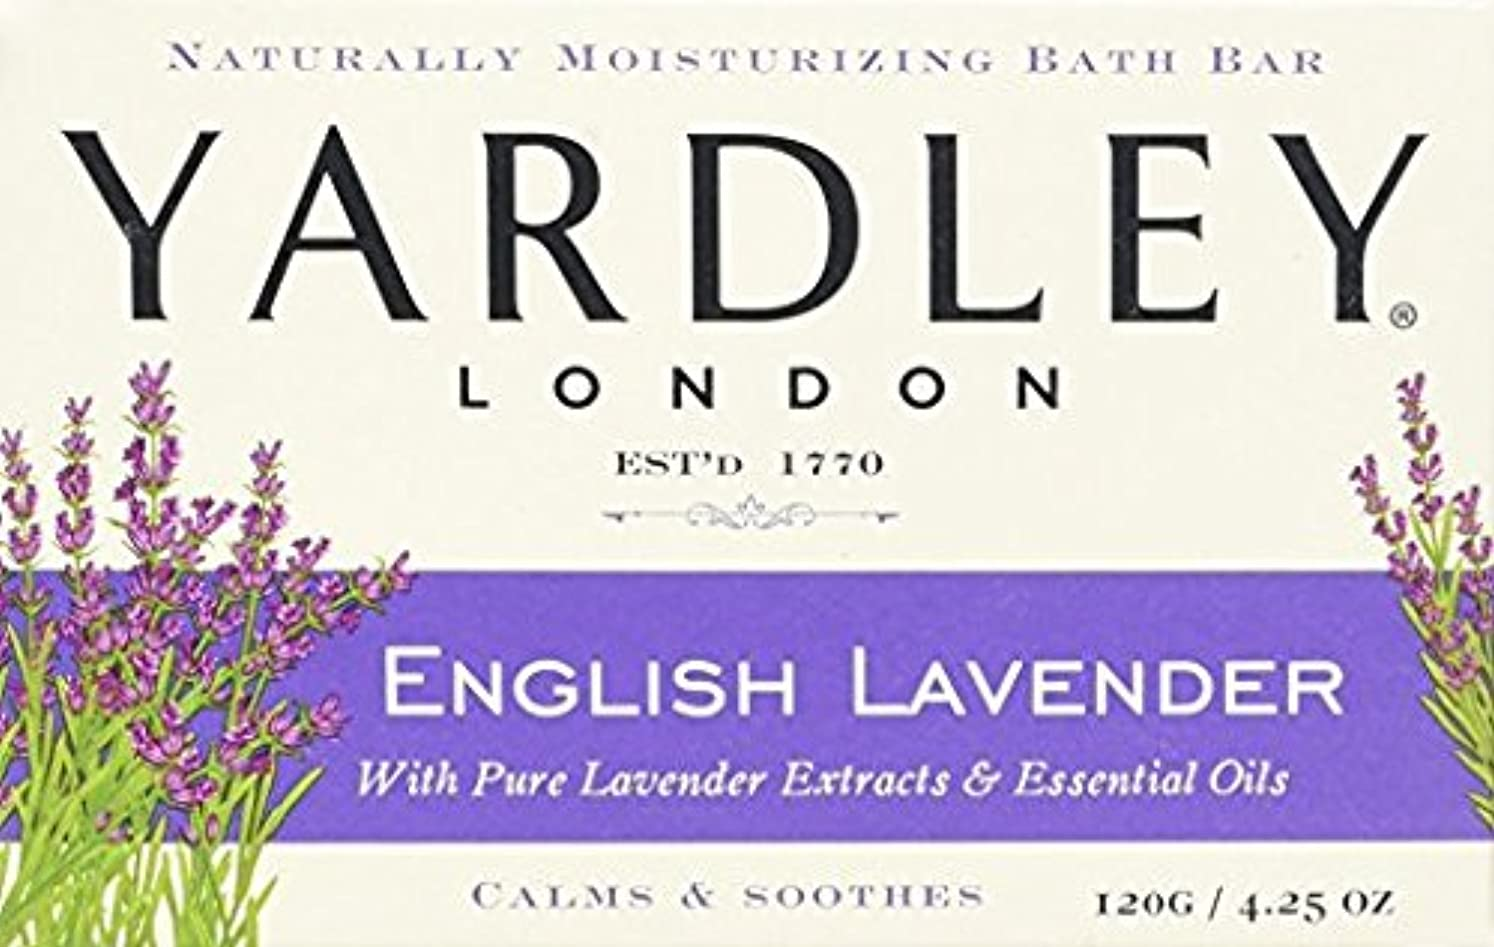 サンダース普及ぶどう海外直送品Yardley Yardley London Naturally Moisturizing Bar Soap, English Lavender 4.25 oz (Pack of 2)